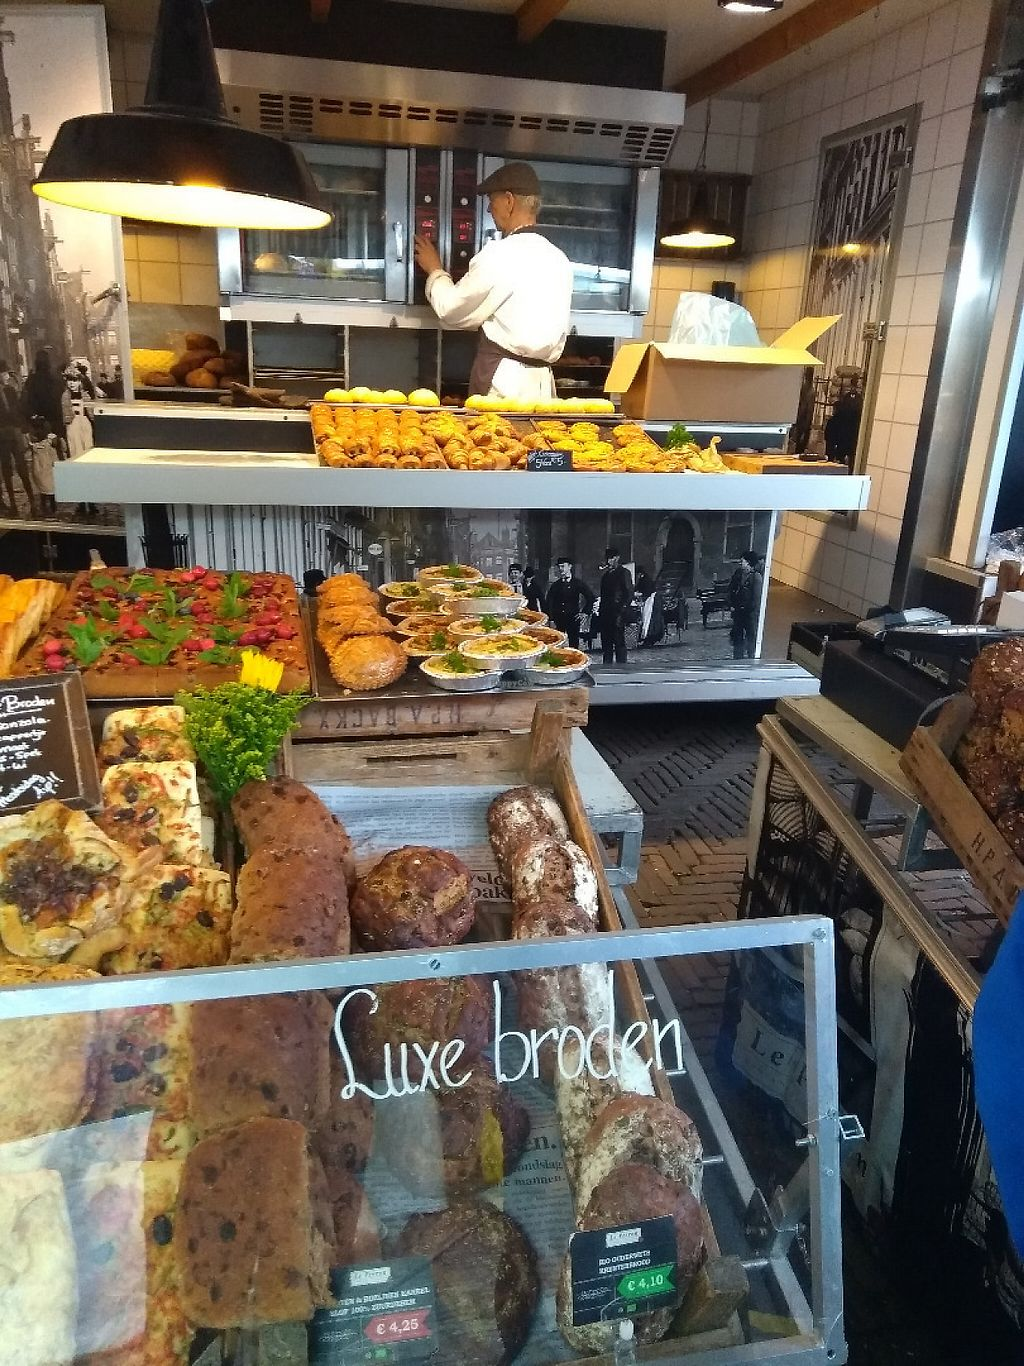 """Photo of Boerenmarkt op de Noordermarkt  by <a href=""""/members/profile/thenaturalfusions"""">thenaturalfusions</a> <br/>Organic Bakery <br/> May 19, 2017  - <a href='/contact/abuse/image/92370/260403'>Report</a>"""